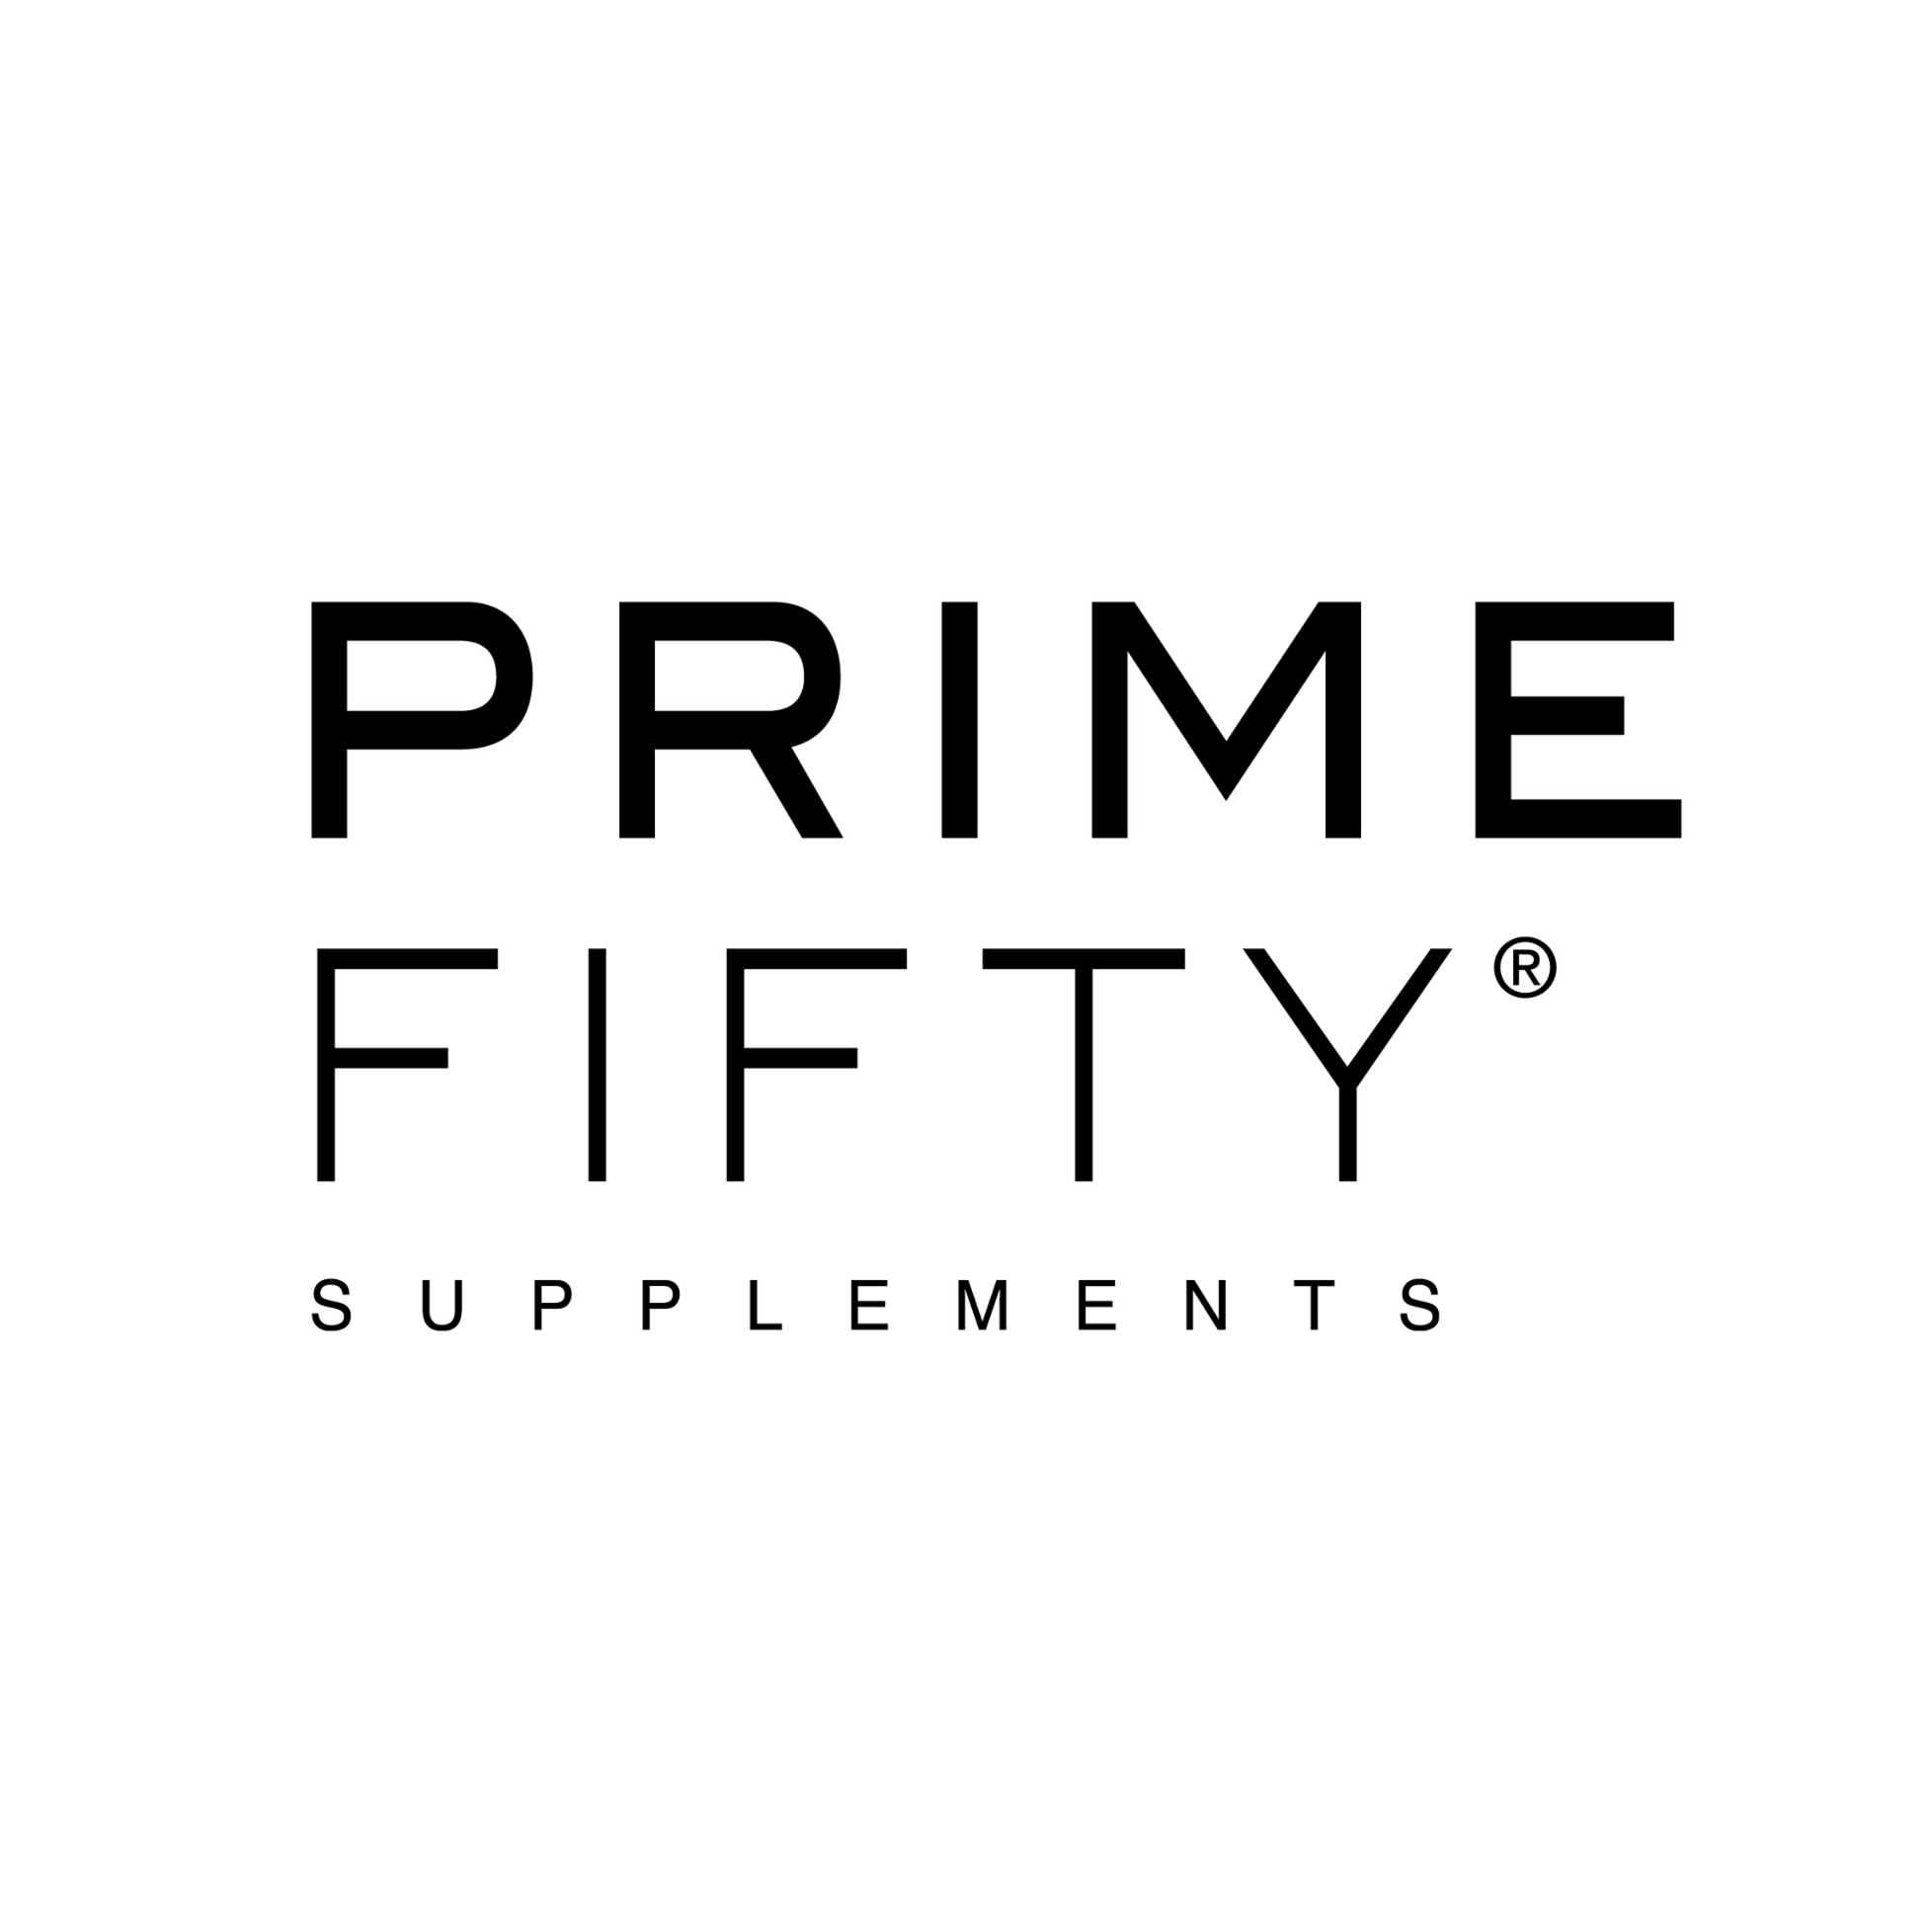 Prime Fifty